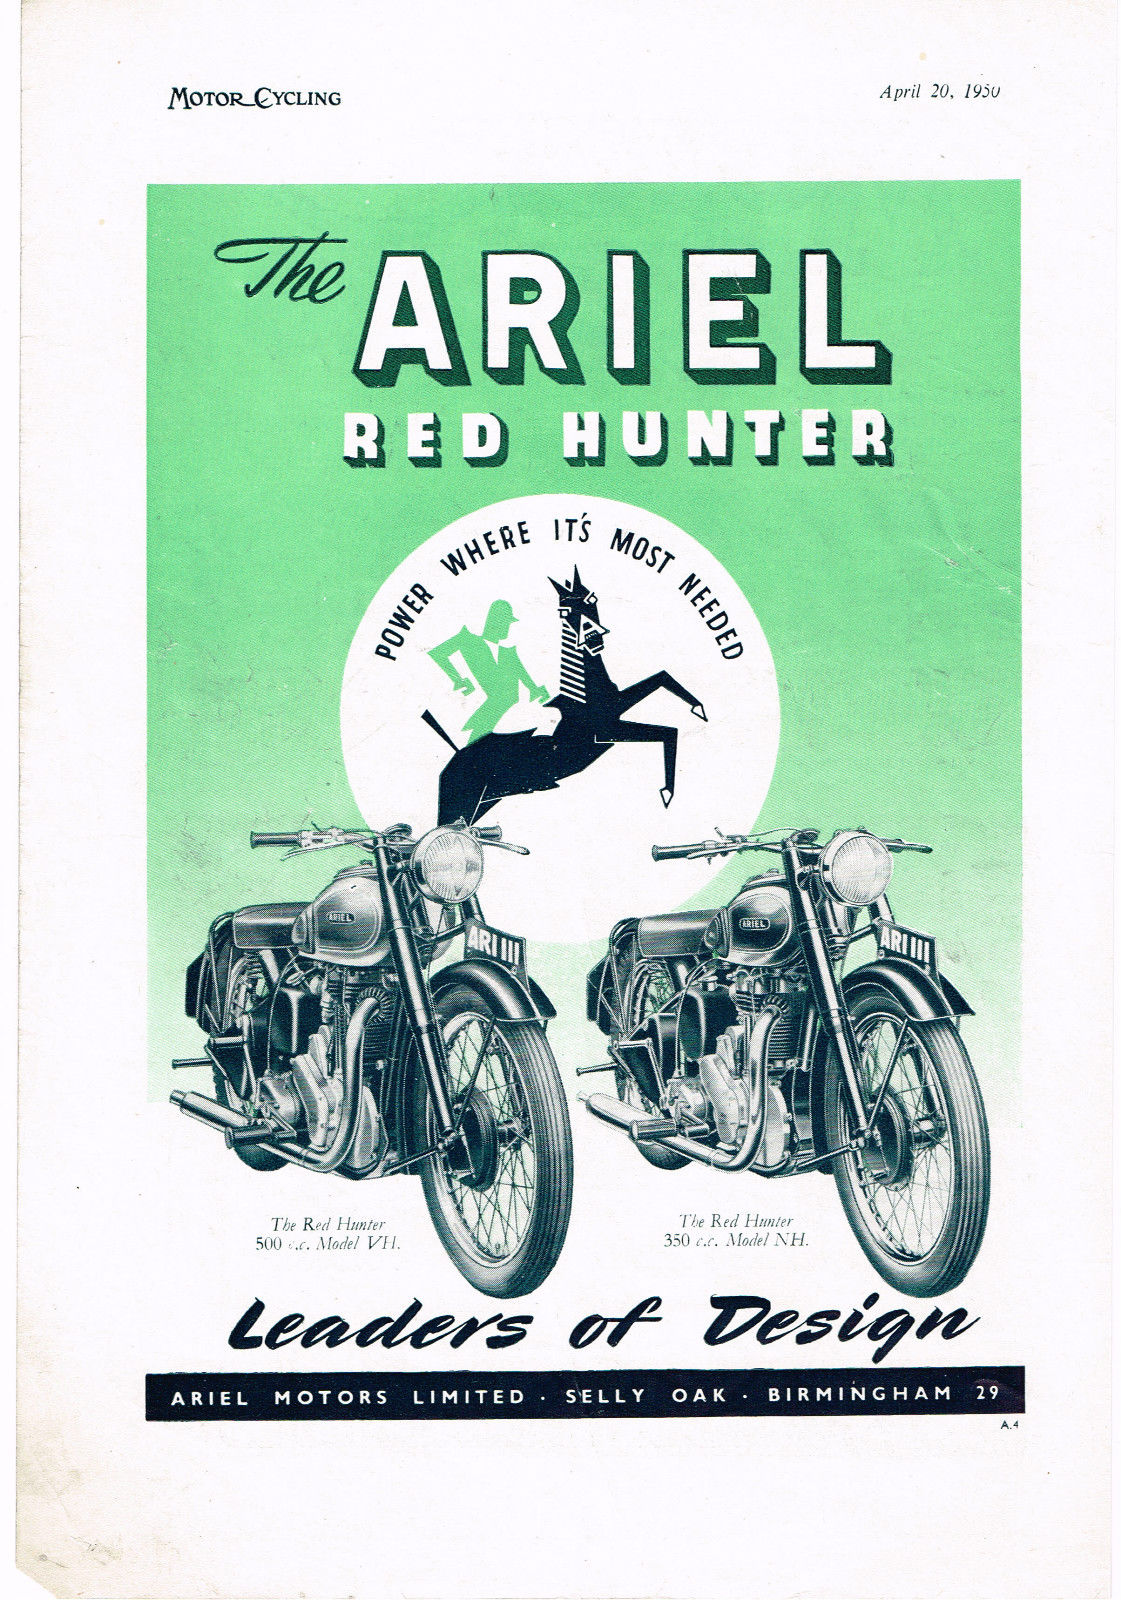 Ariel 350 Single Engine Diagram Machine T Motorcycle Brochure Showing The New 1000cc Sq4 1939 Of On Ohv Models Valve Gear Was Lubricated Via A Thin External Tube Td Off Oil Return Pipe Which Gave Low Pressure Feed To Avoid Over Oiling